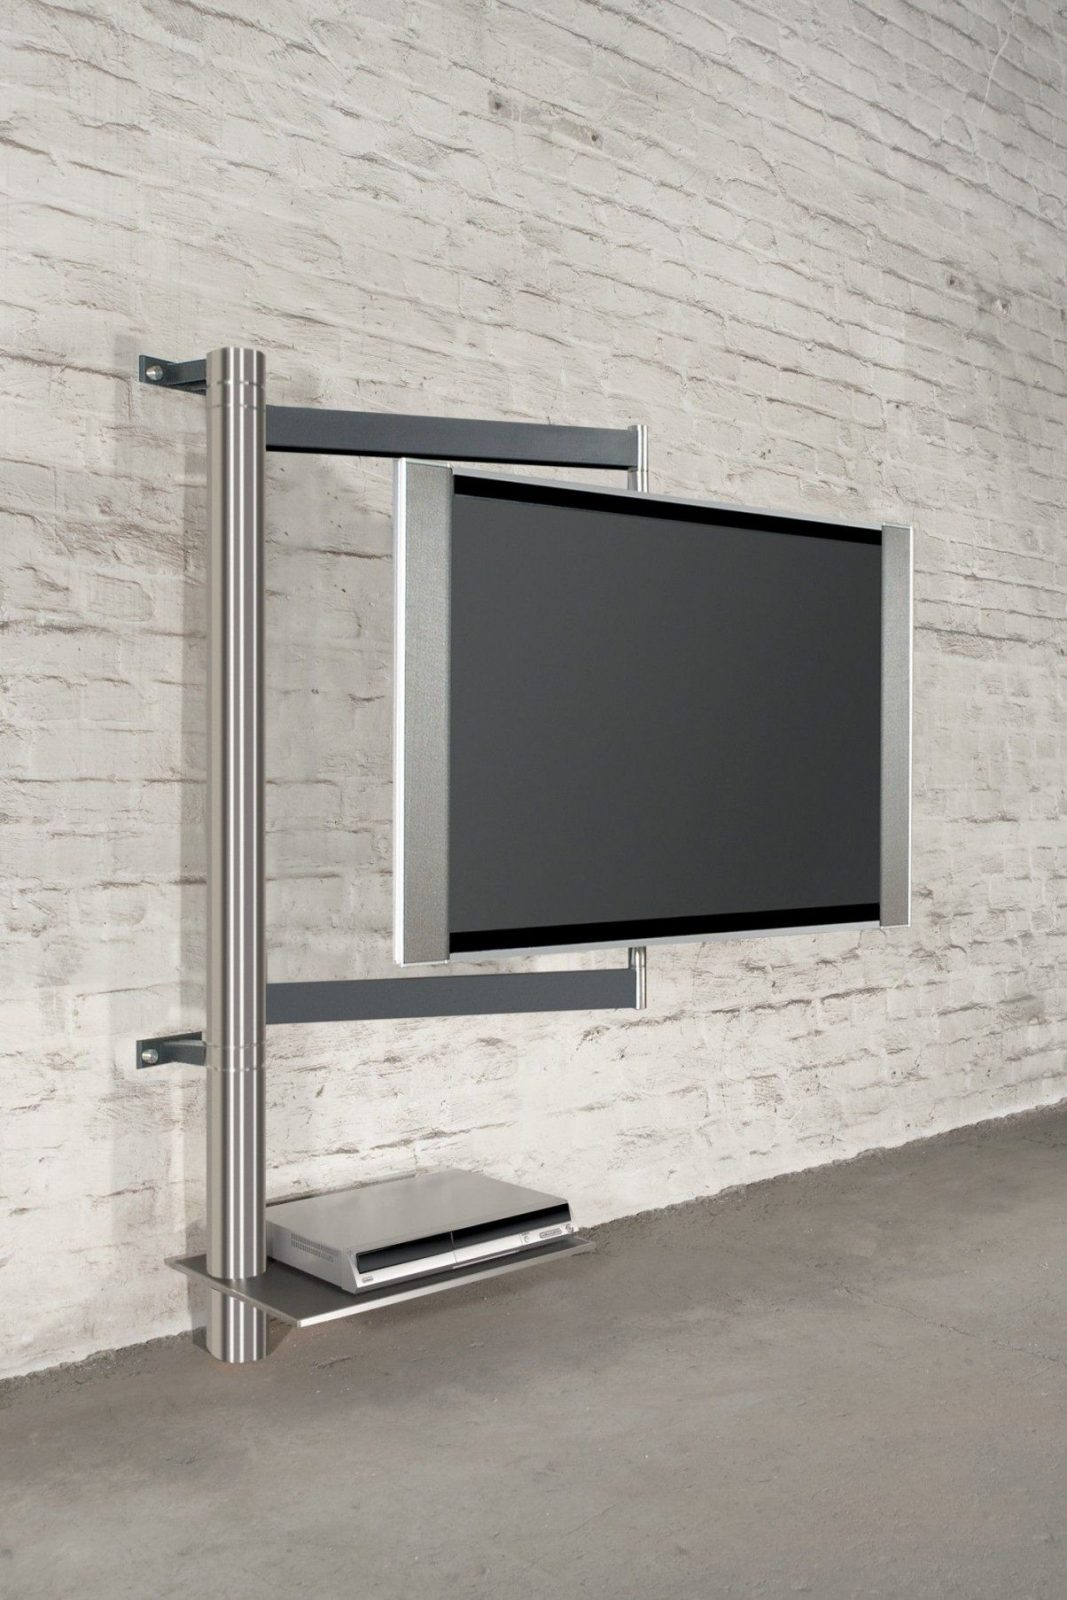 tv an wand kabel verstecken haus design ideen. Black Bedroom Furniture Sets. Home Design Ideas